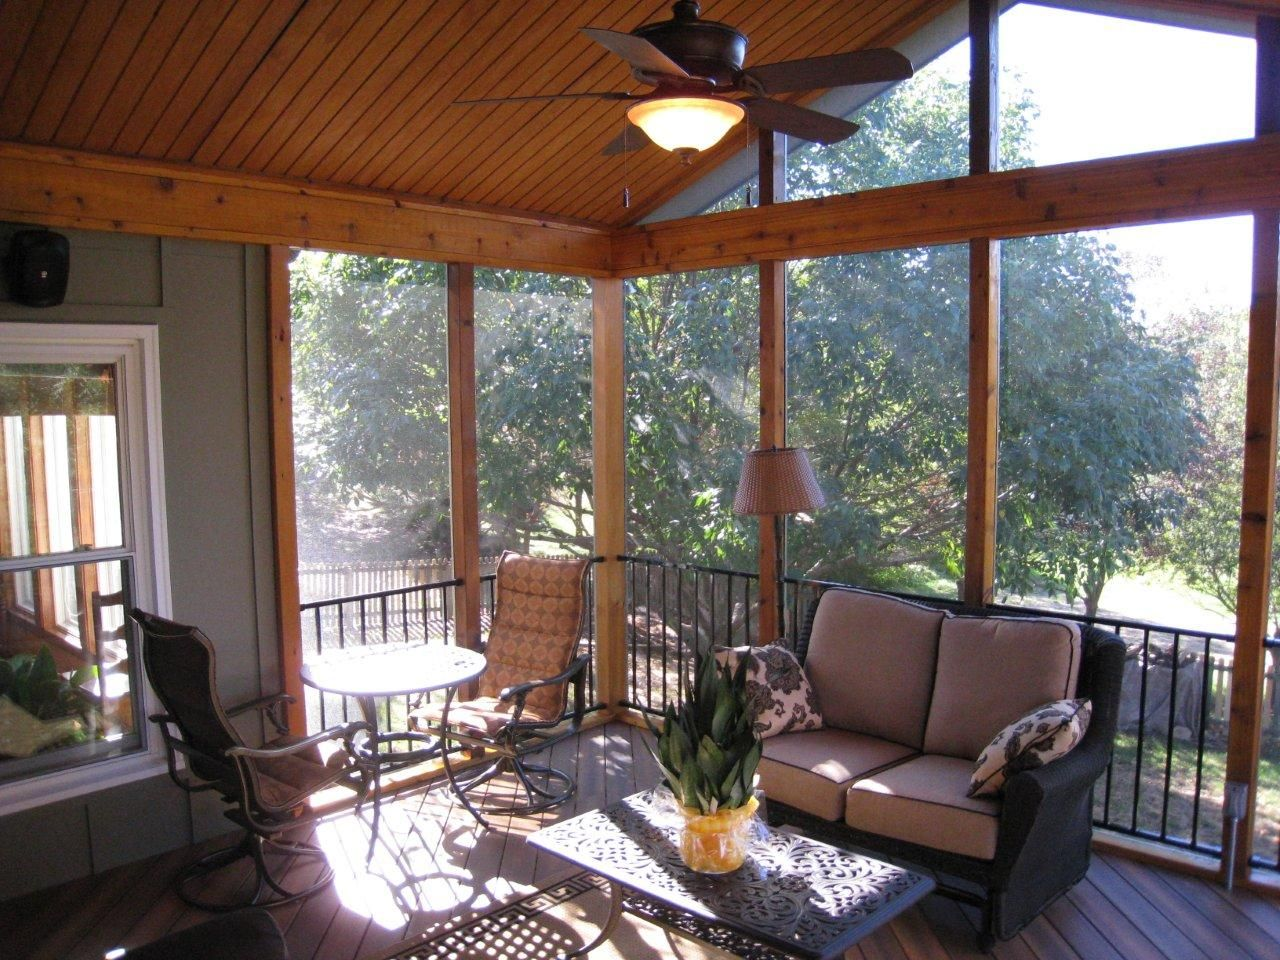 Outdoor Patio Ceiling Ideas Archadeck Of Kansas City Decks Screen Porches Sunrooms Design